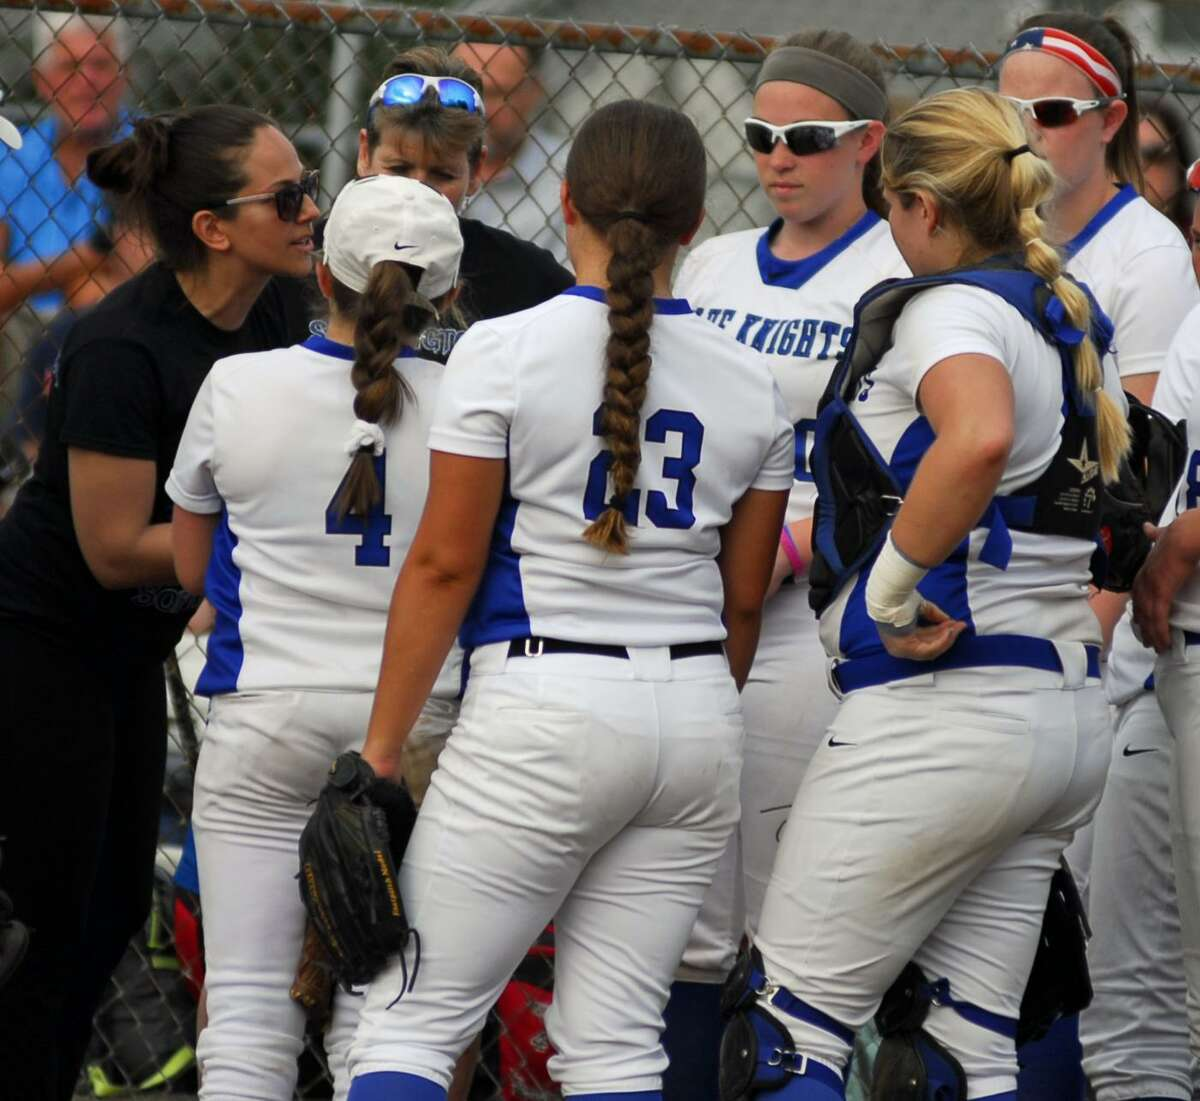 Southington coach Davina Hernandez, left, addresses her team during a game against Fitch on Friday.